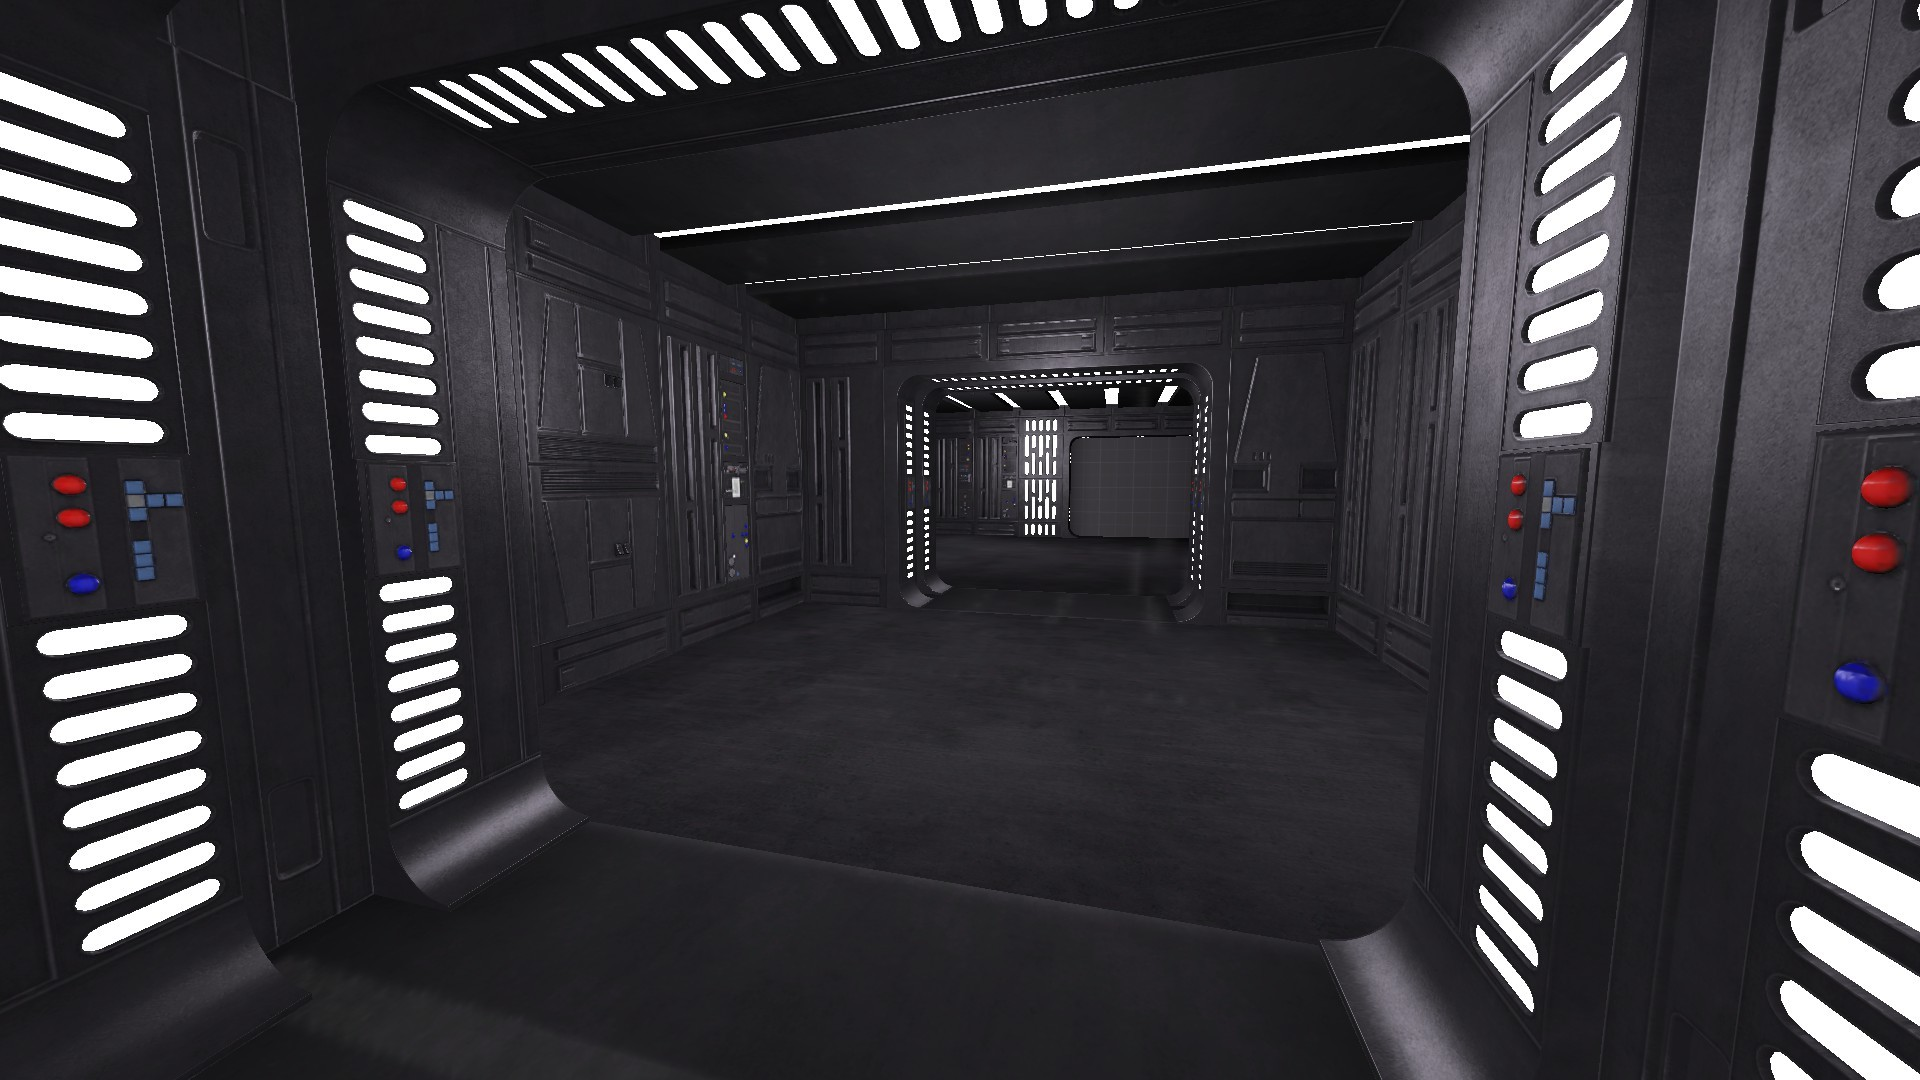 Death Star Interior Background Posted By Sarah Sellers